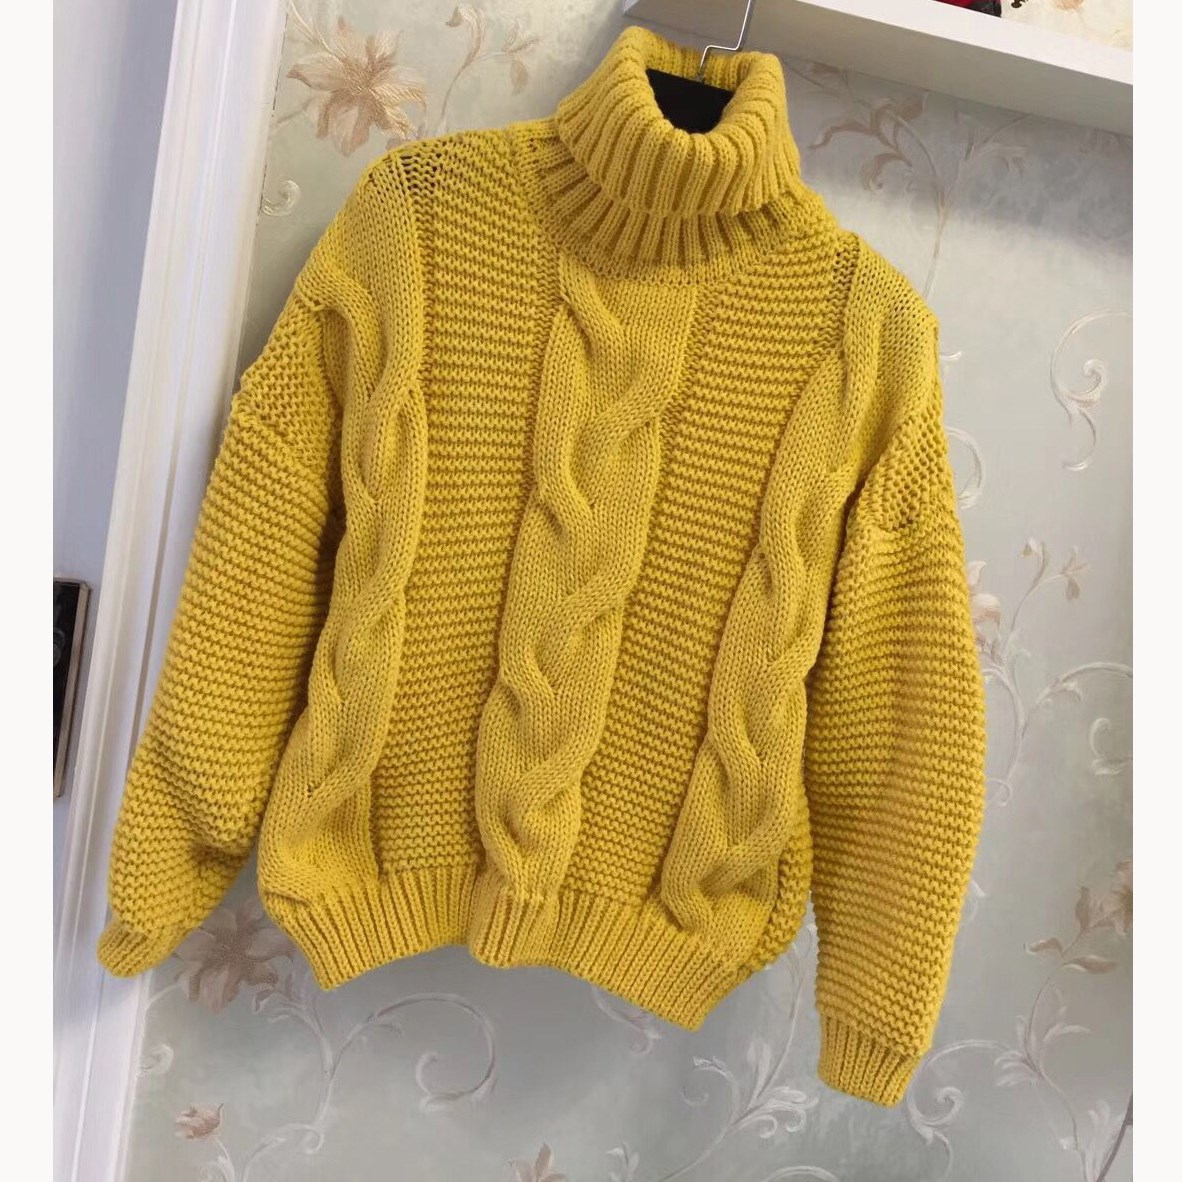 Autumn Winter Women Knit Sweater Pullover Korean Style Turtleneck Thick Sweater Solid Snow Wear Lazy Twist Jumpers